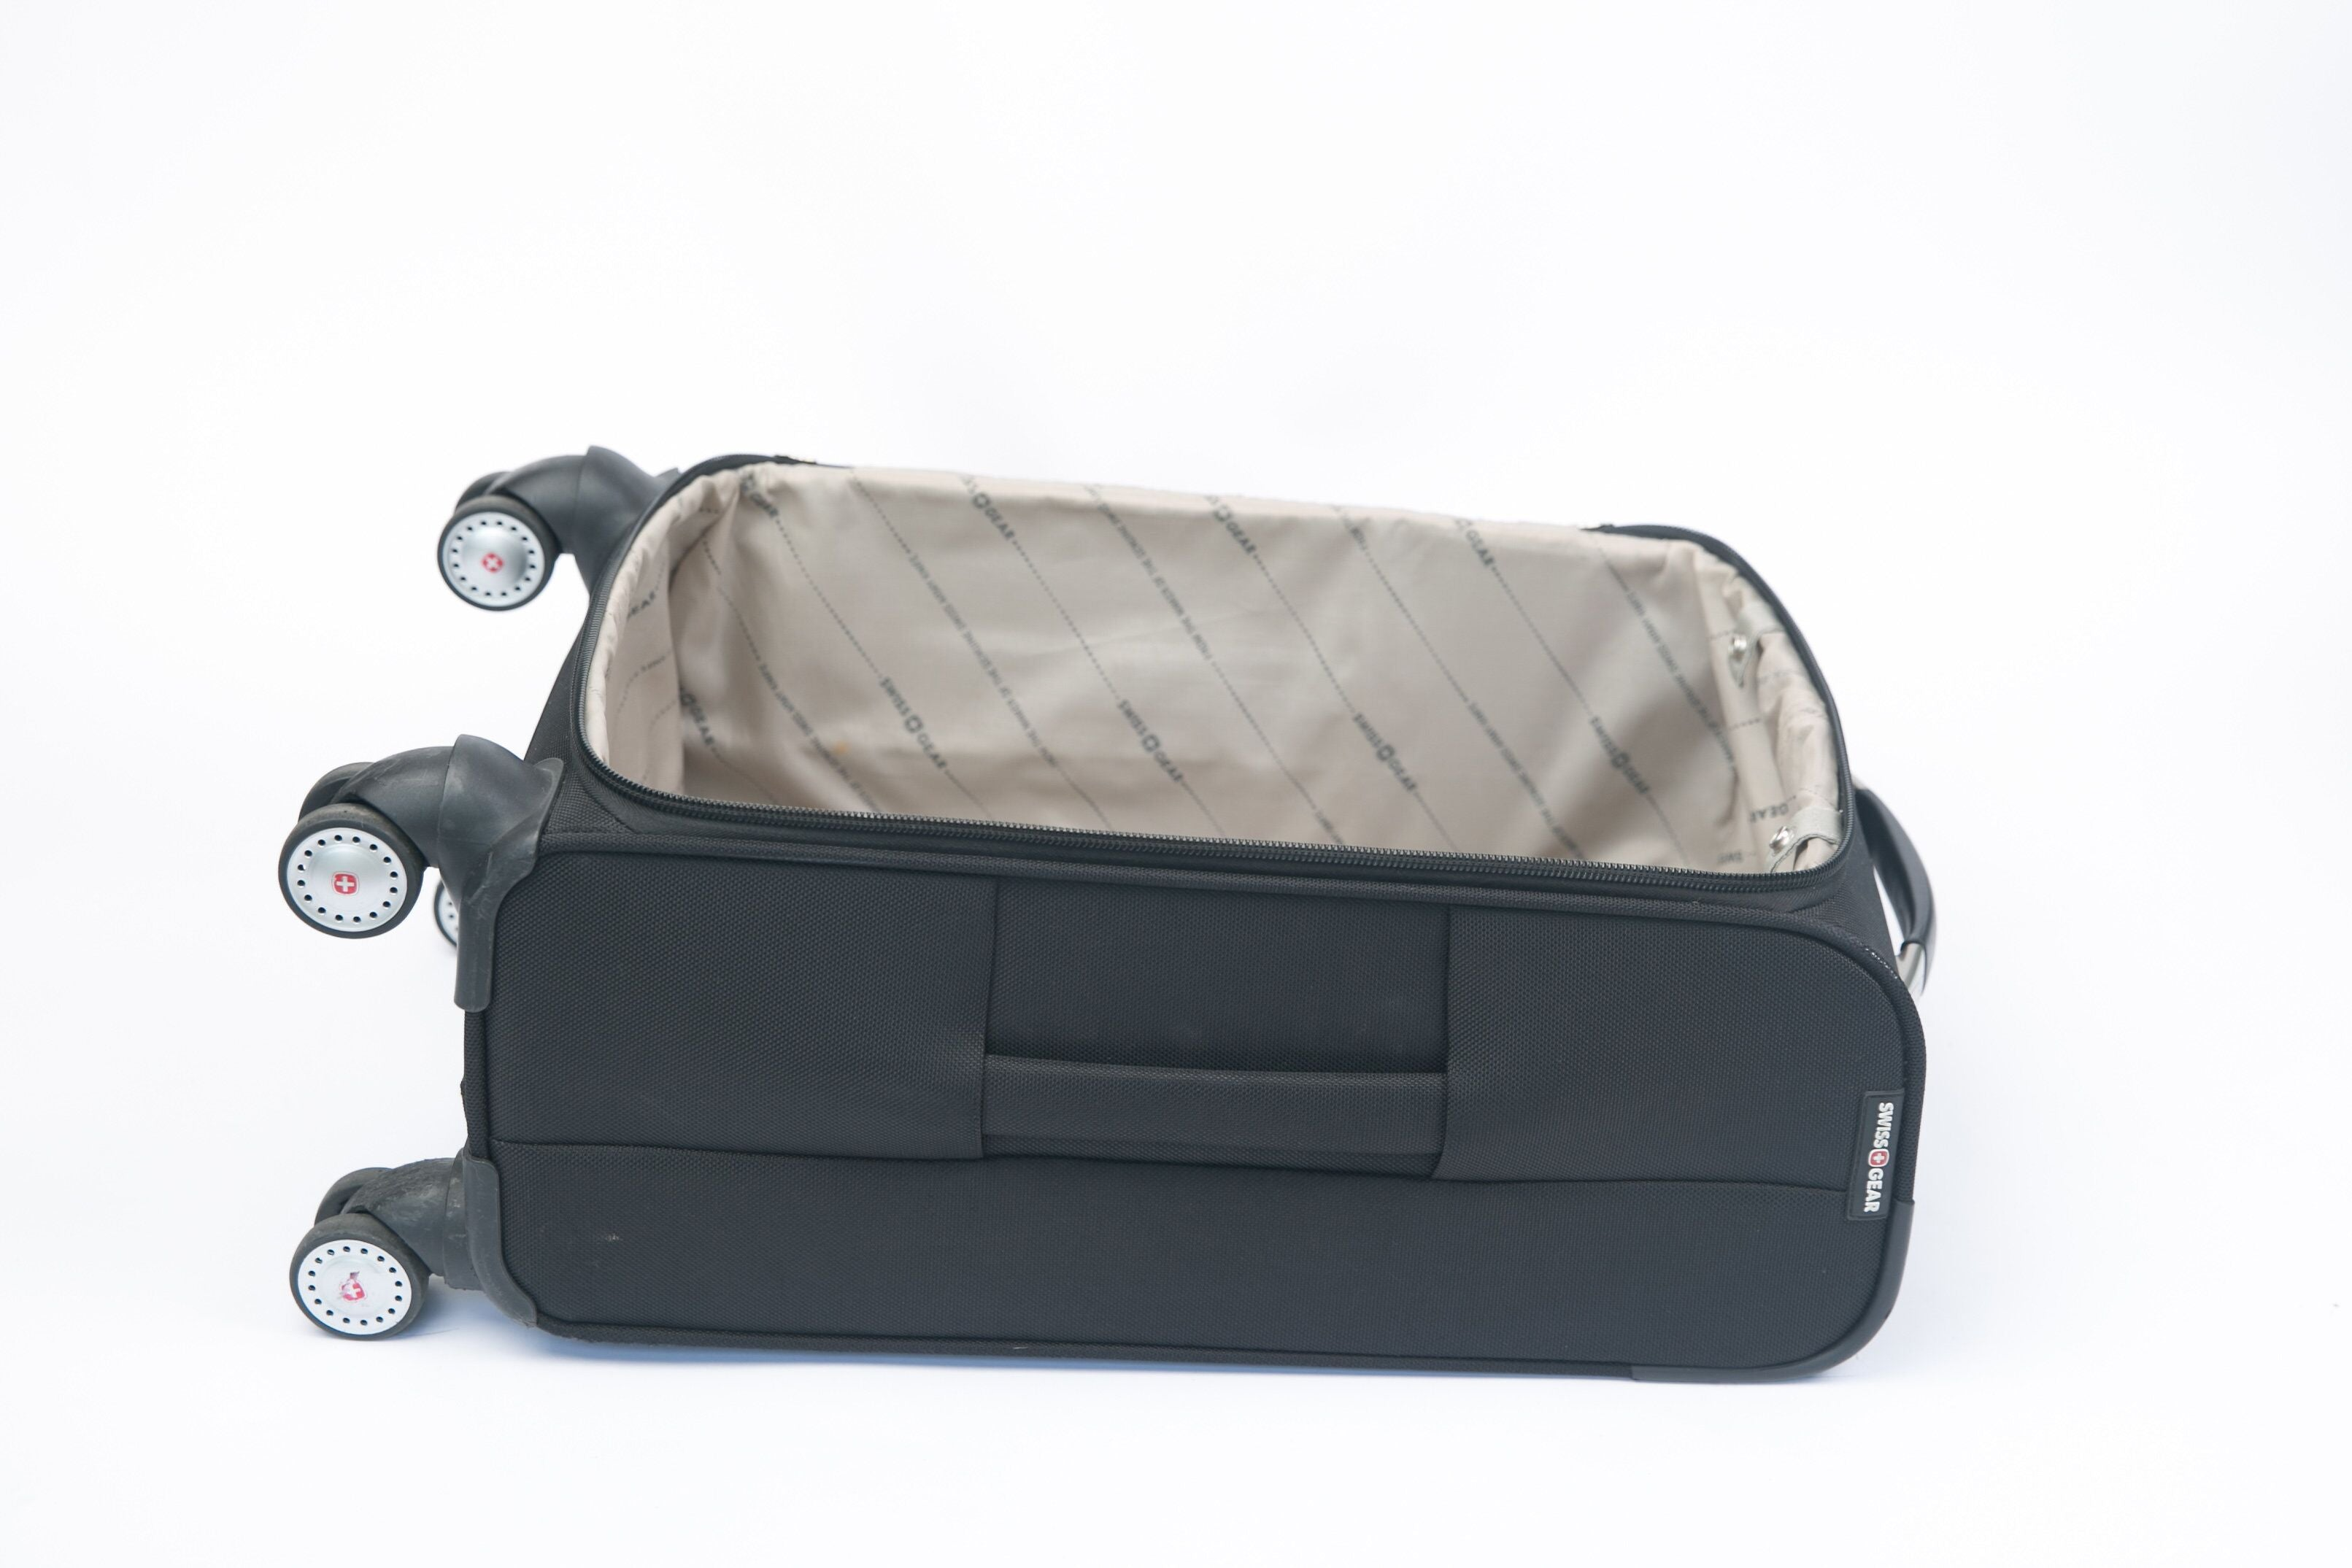 Durable suitcase for travel